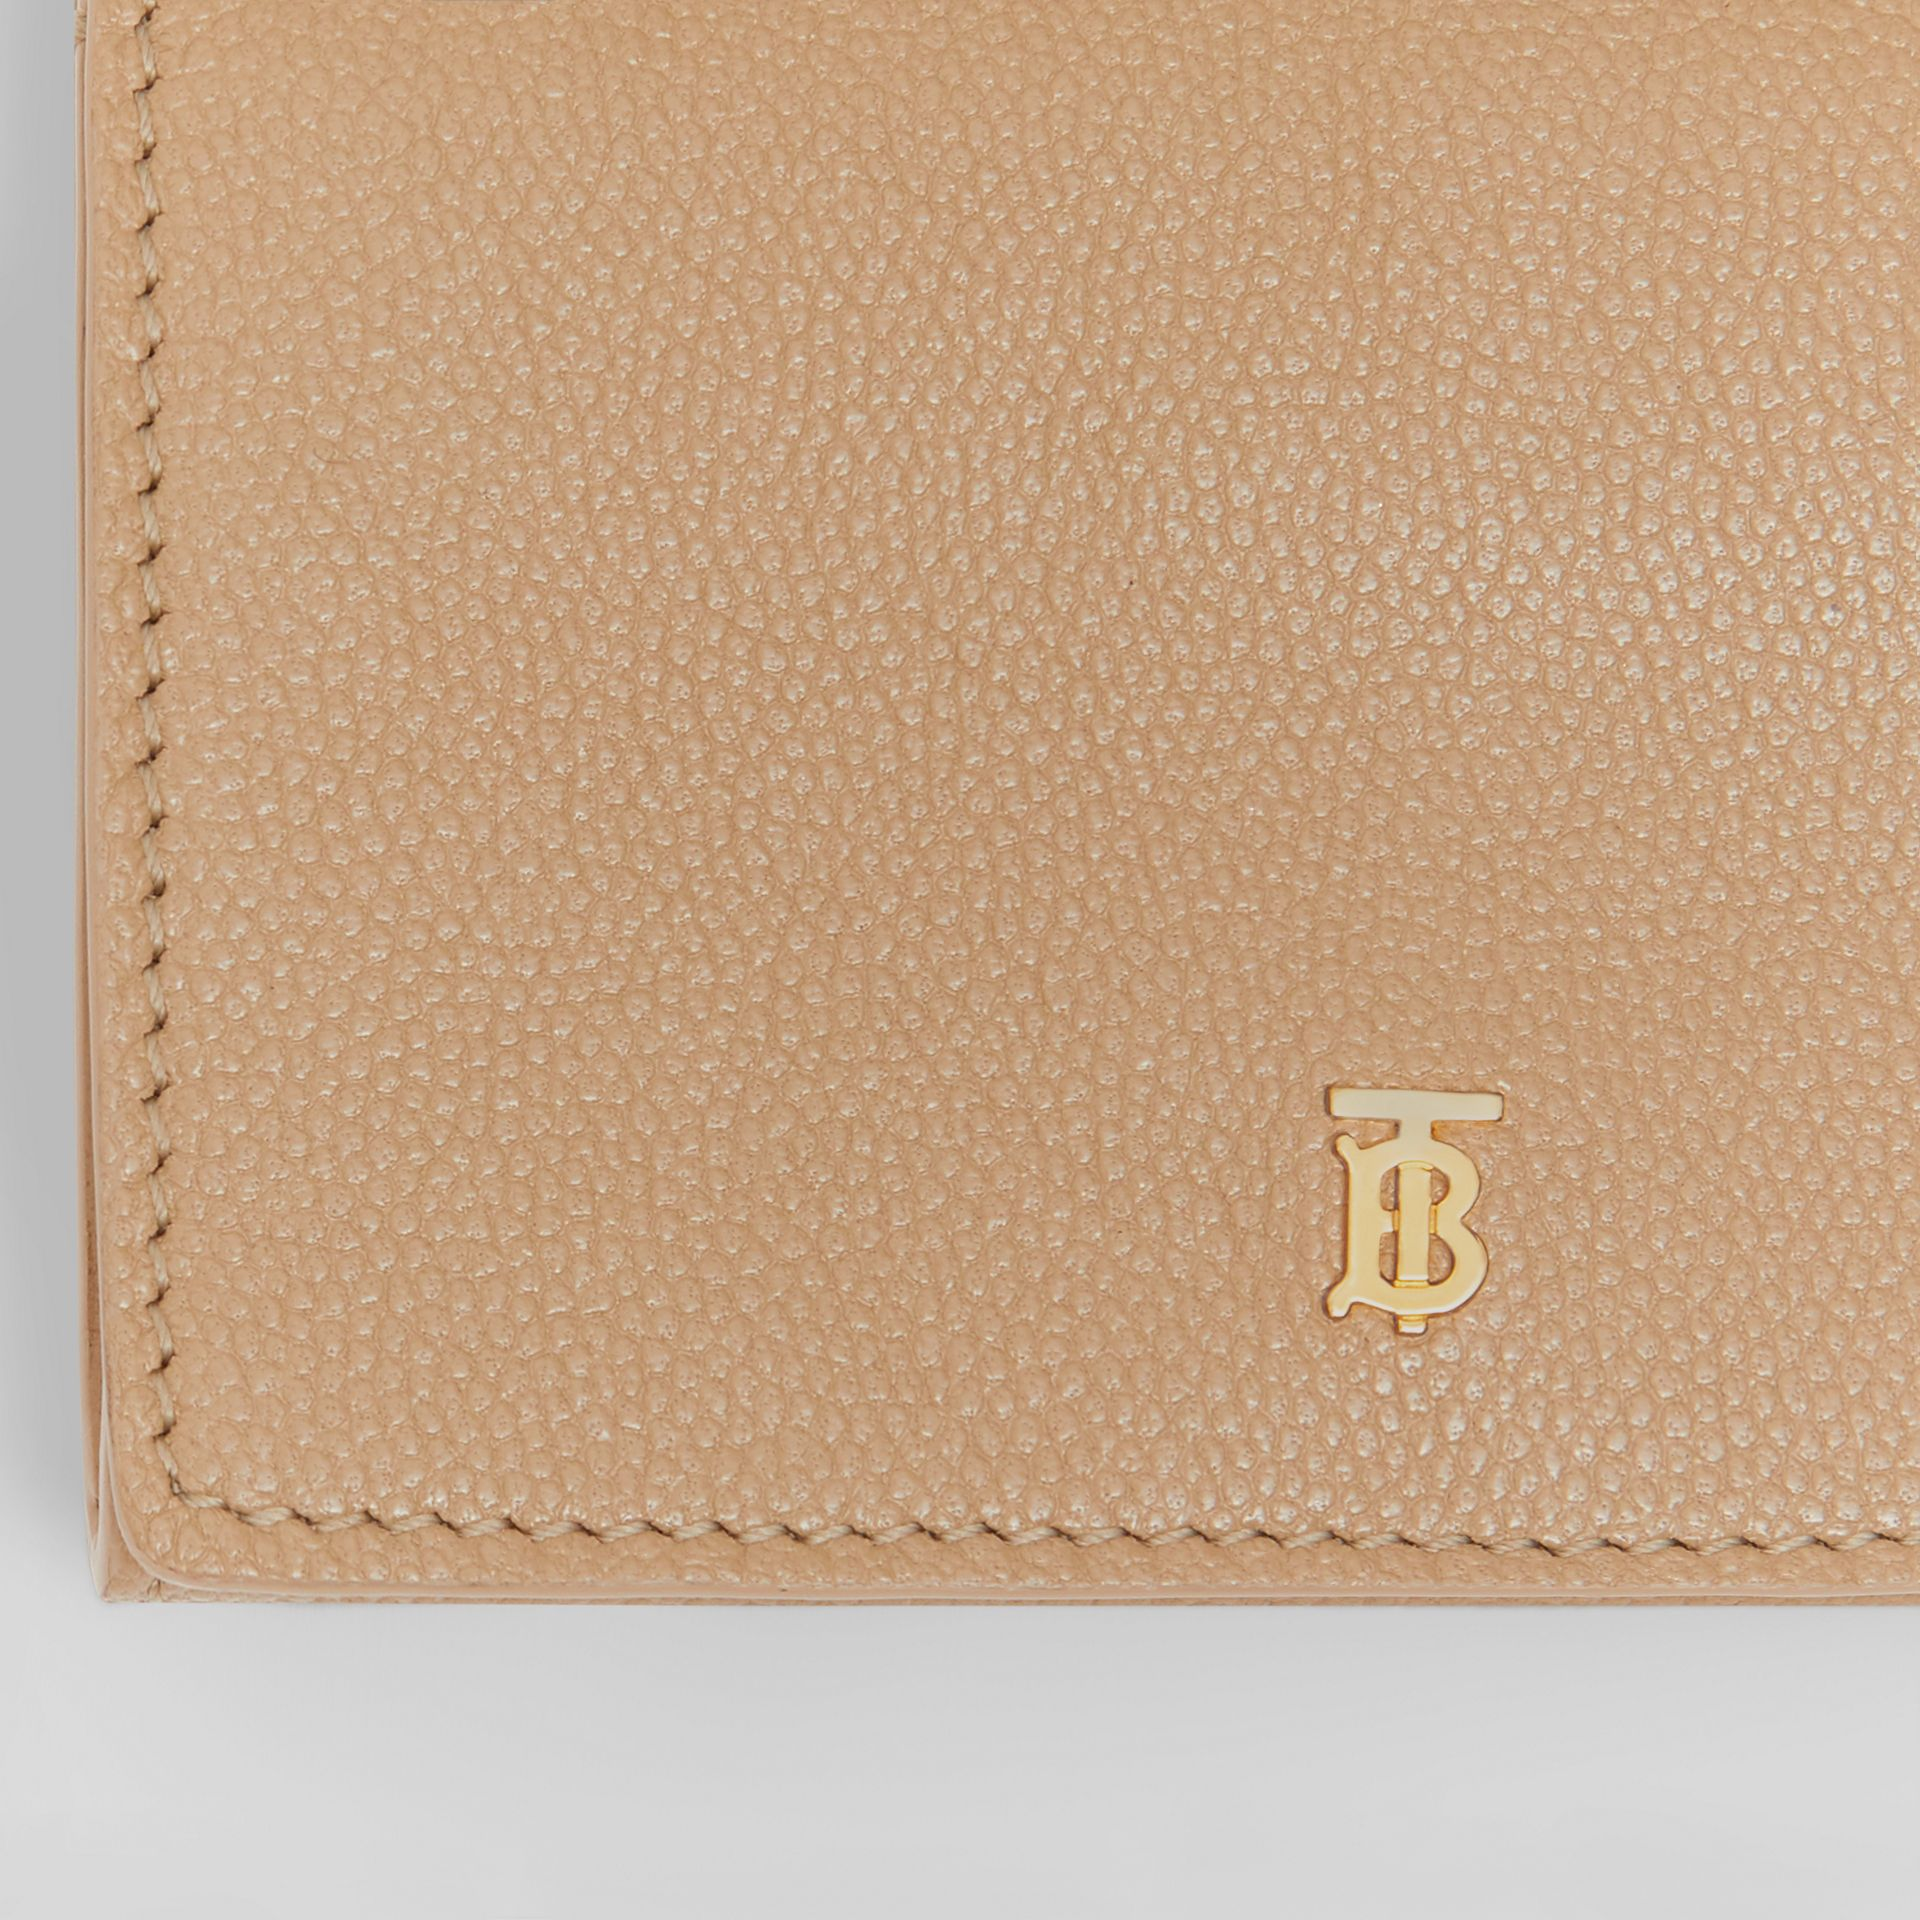 Small Grainy Leather Folding Wallet in Archive Beige - Women | Burberry Singapore - gallery image 1